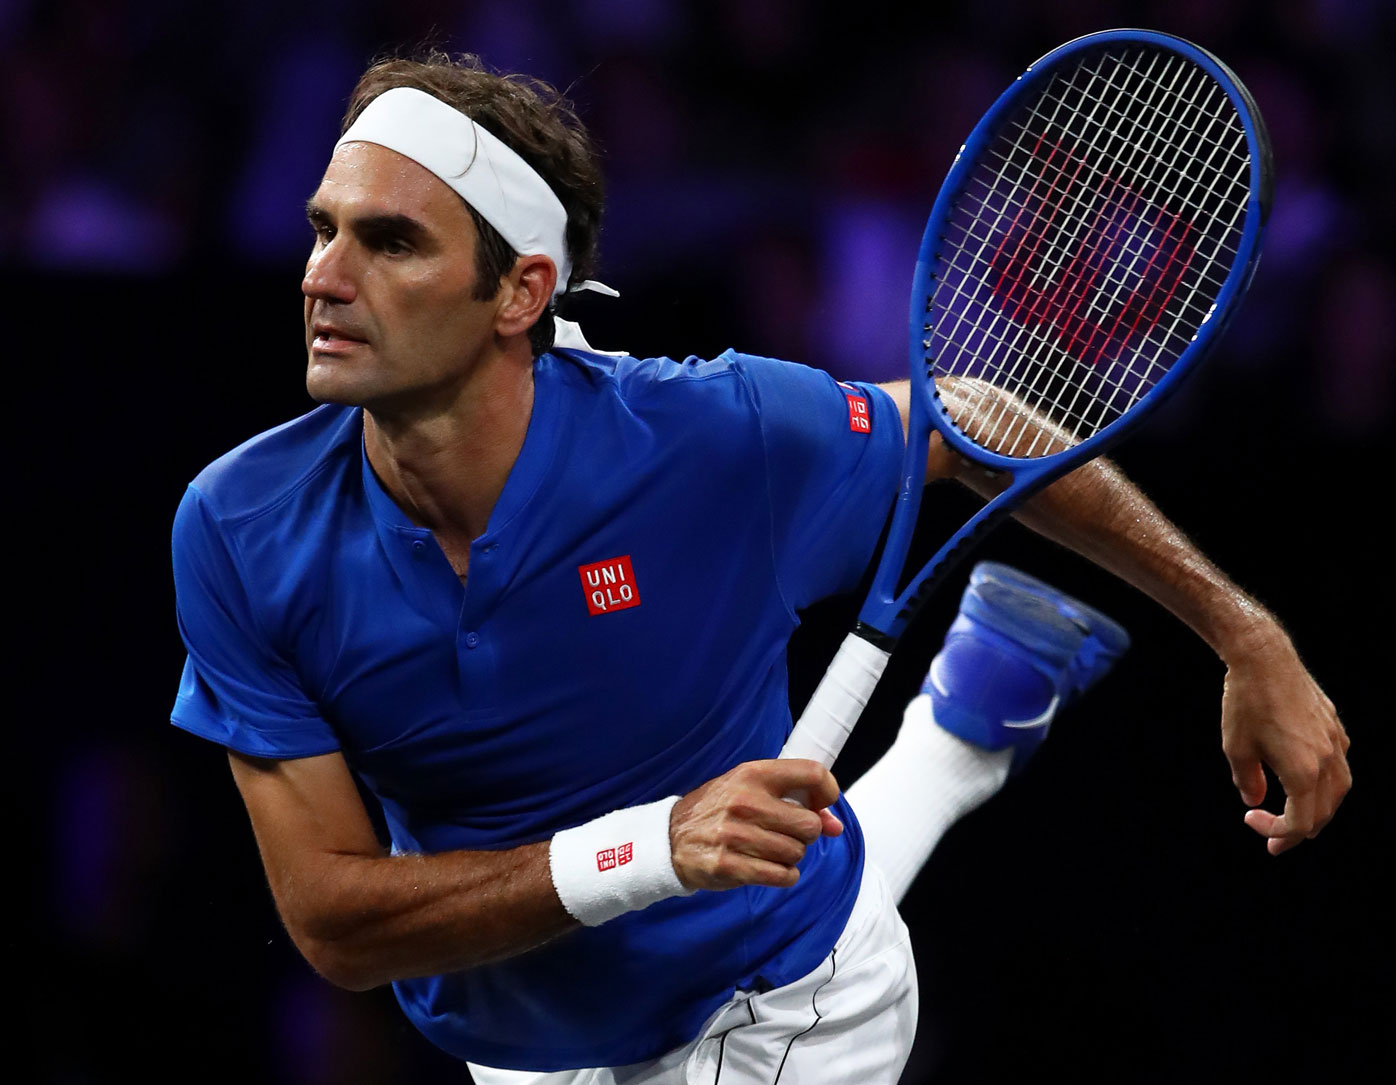 Kyrgios pushes Federer in Laver Cup stunner